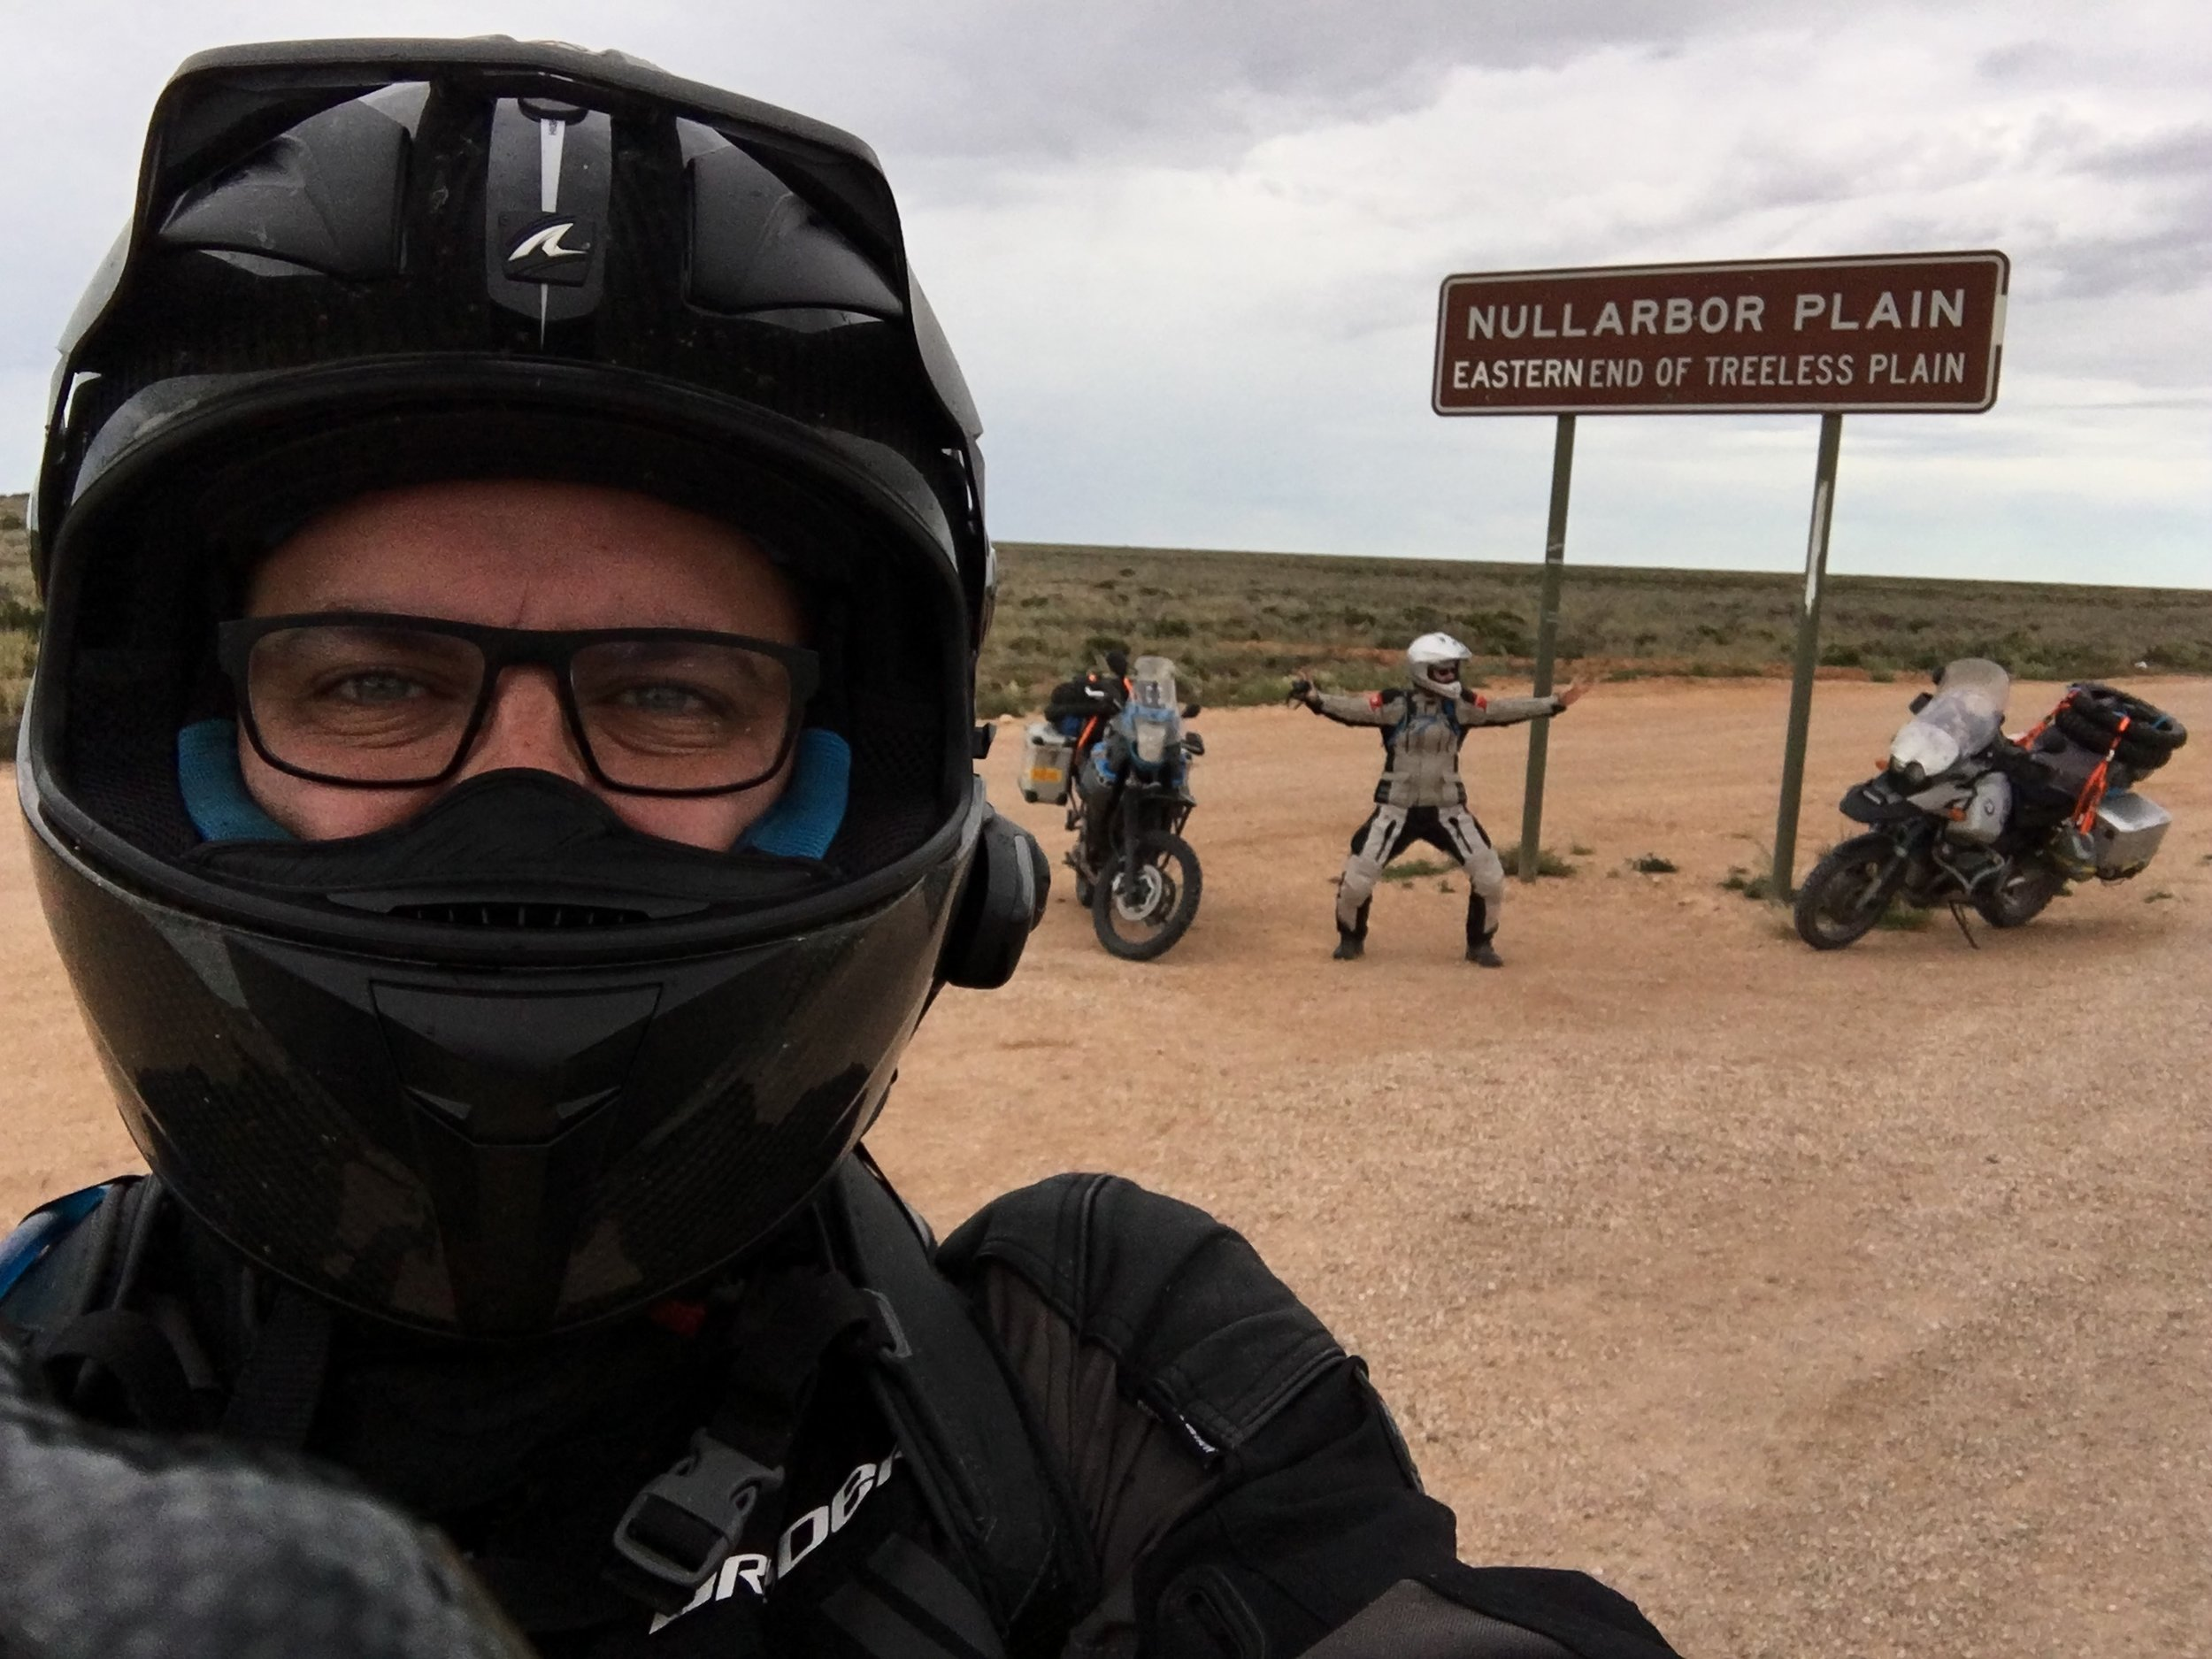 Start of iconic Nullarbor Plain